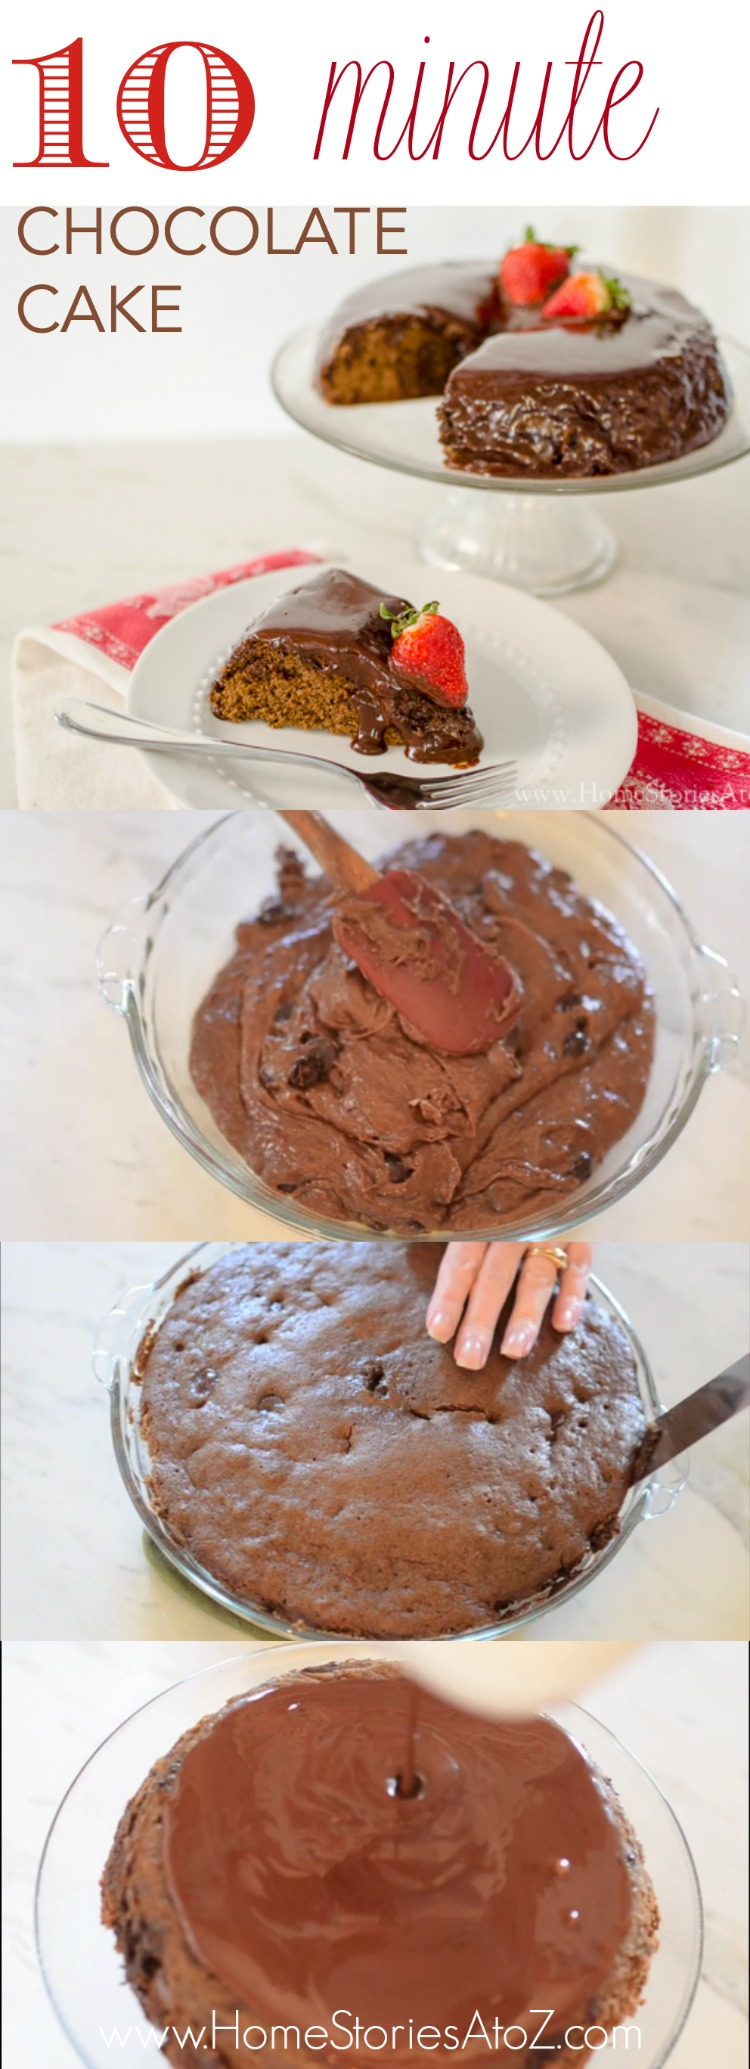 10 minute chocolate cake recipe